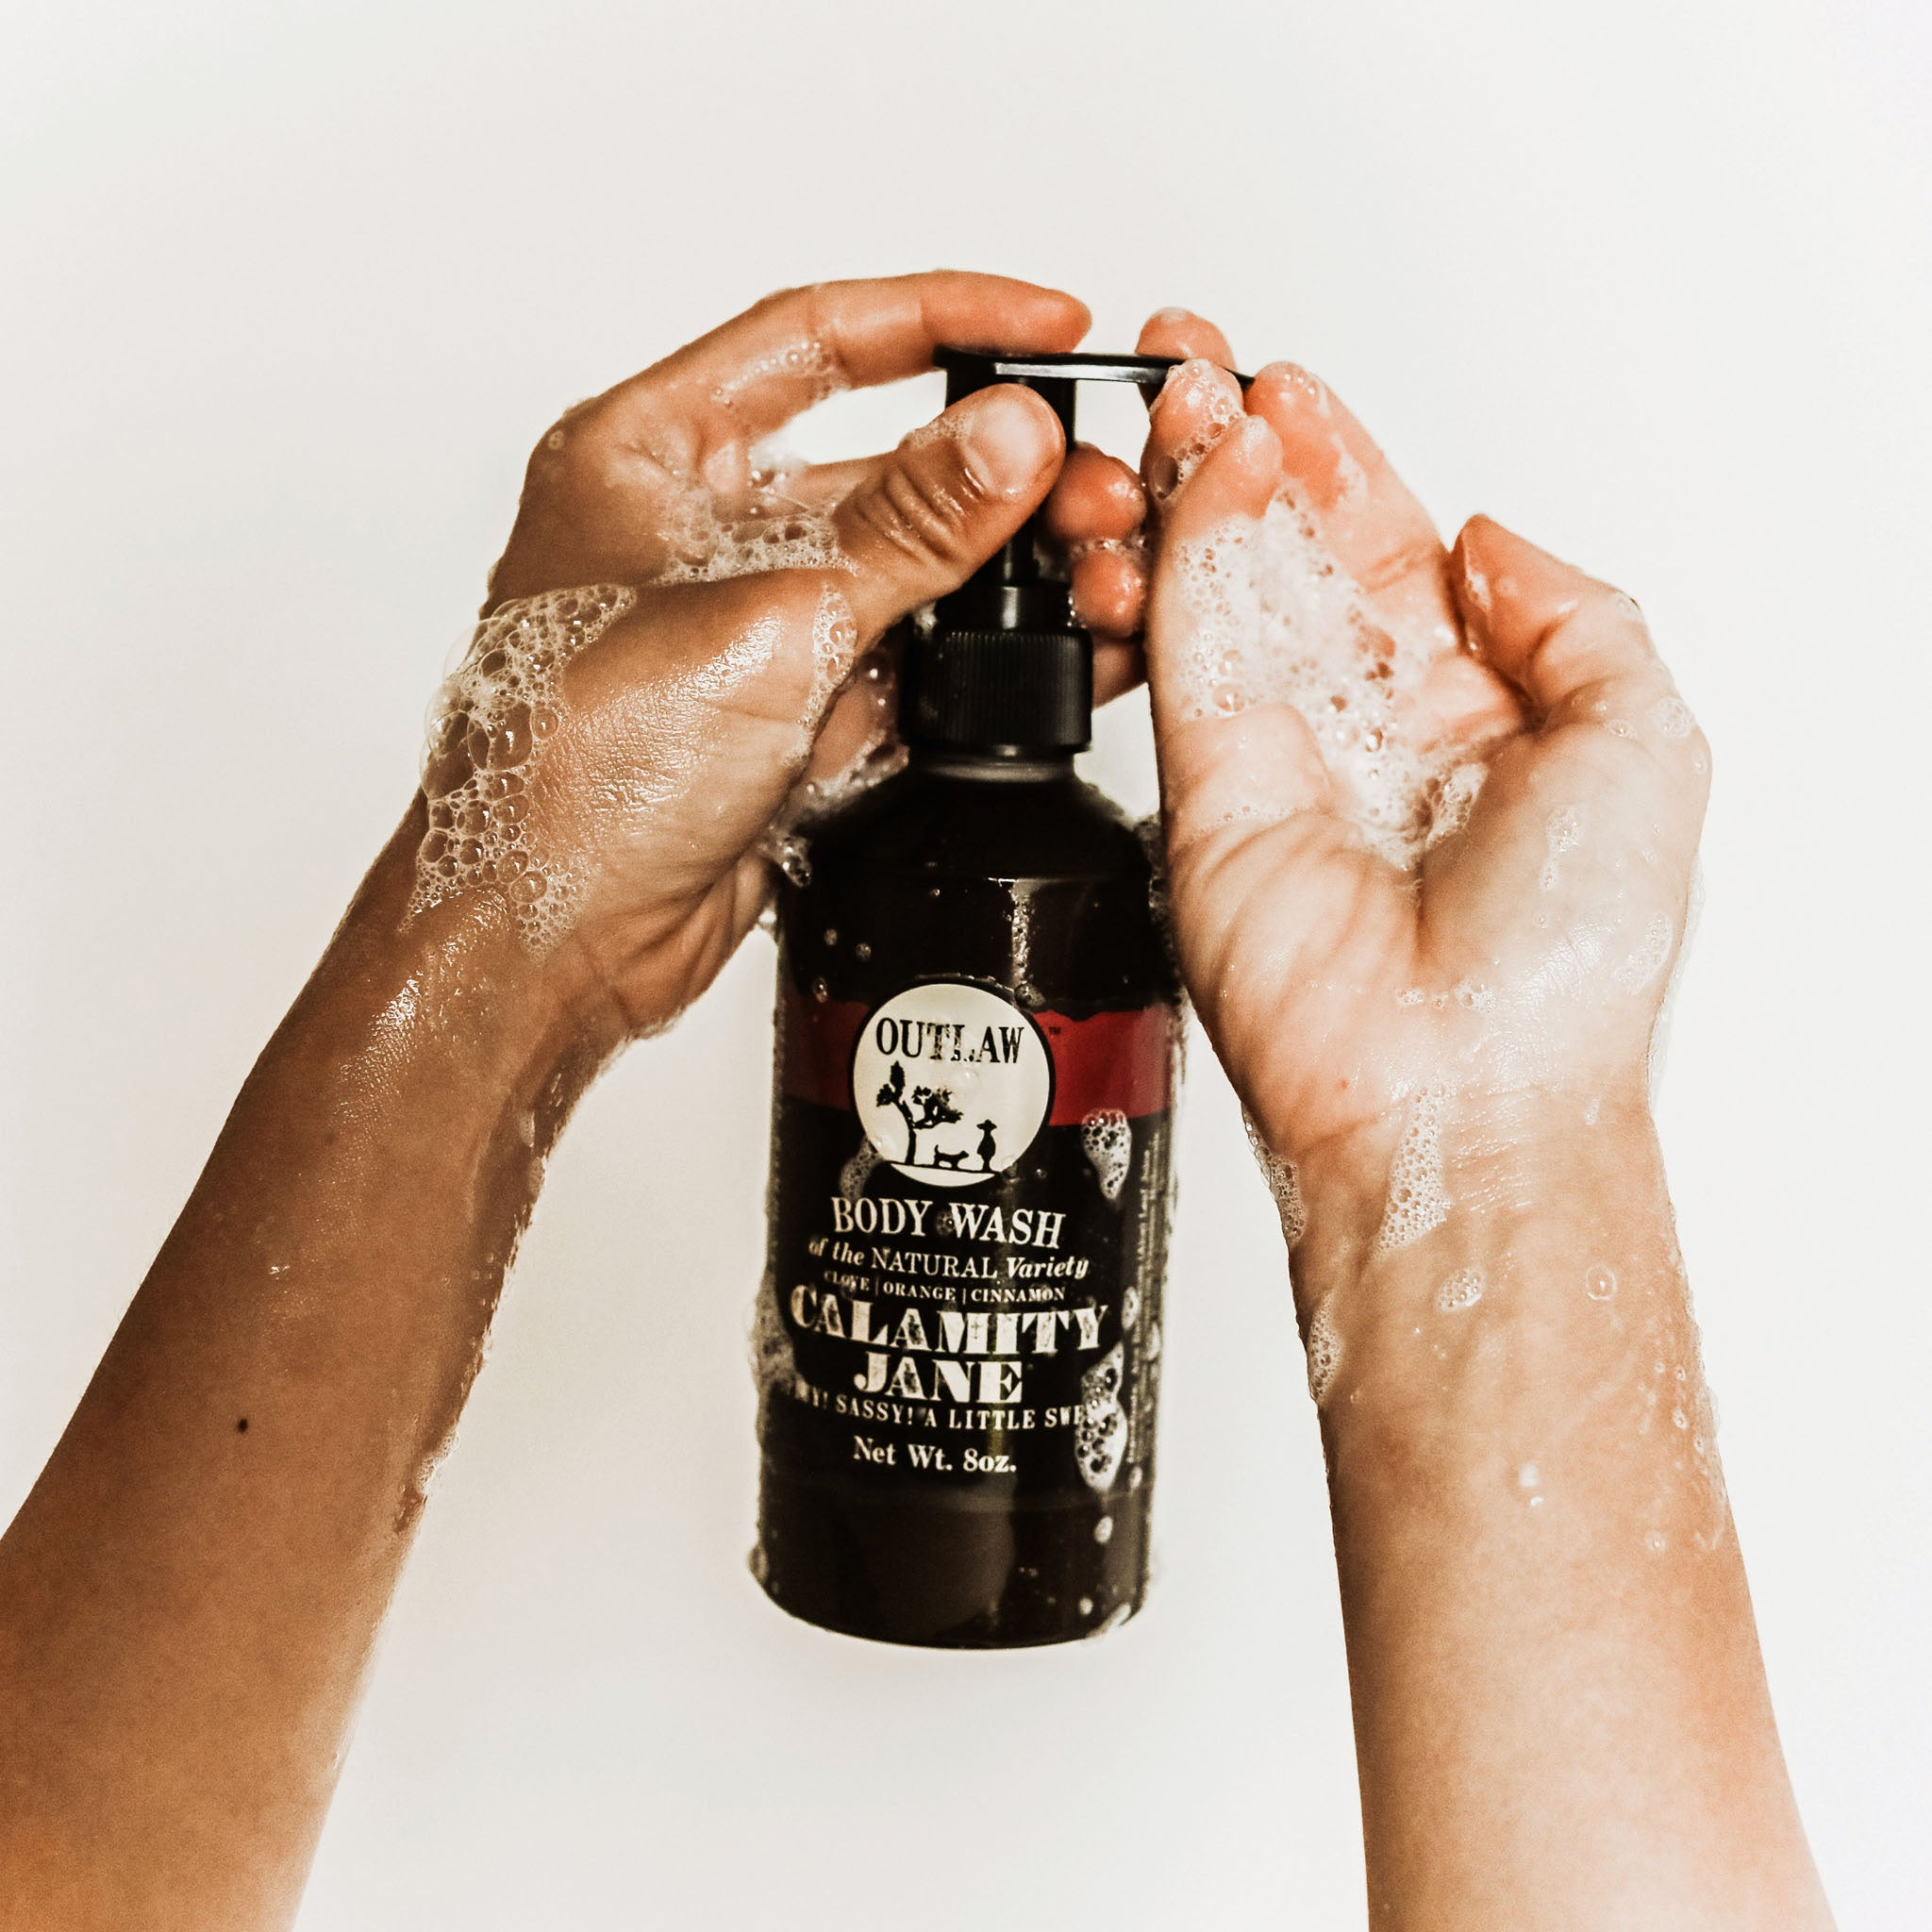 Calamity Jane Body Wash